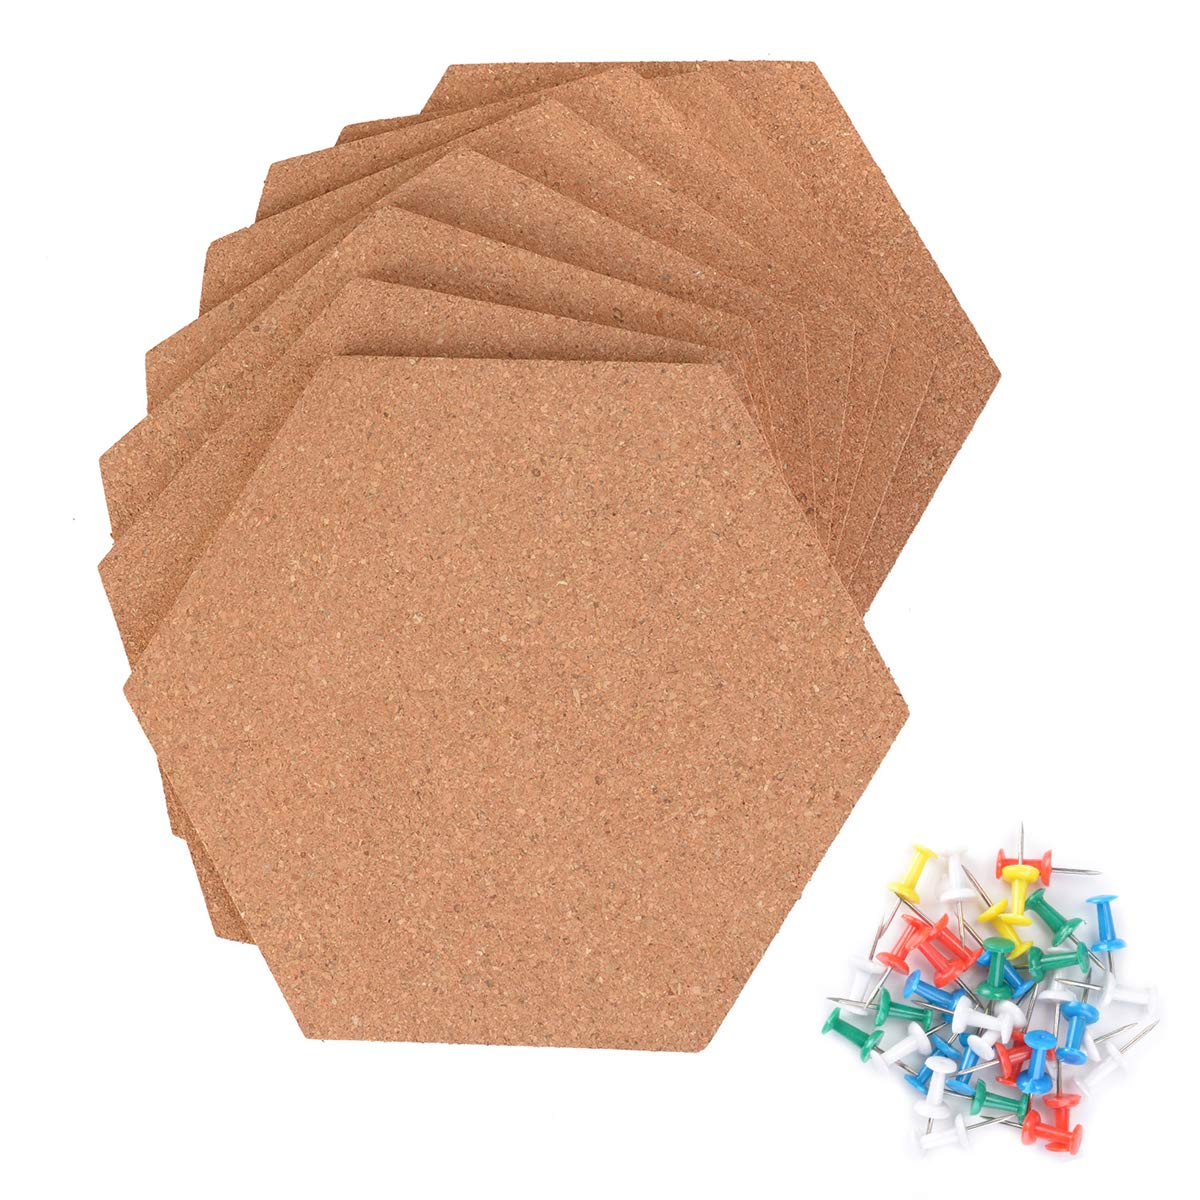 Autrix 8 Pack Hexagon Cork Board Tiles Adhesive Bulletin Board Wood Message Billboard with 35 PCS Pushpins for Home Office Classroom Wall Decoration (7.9 x 6.85 inch)